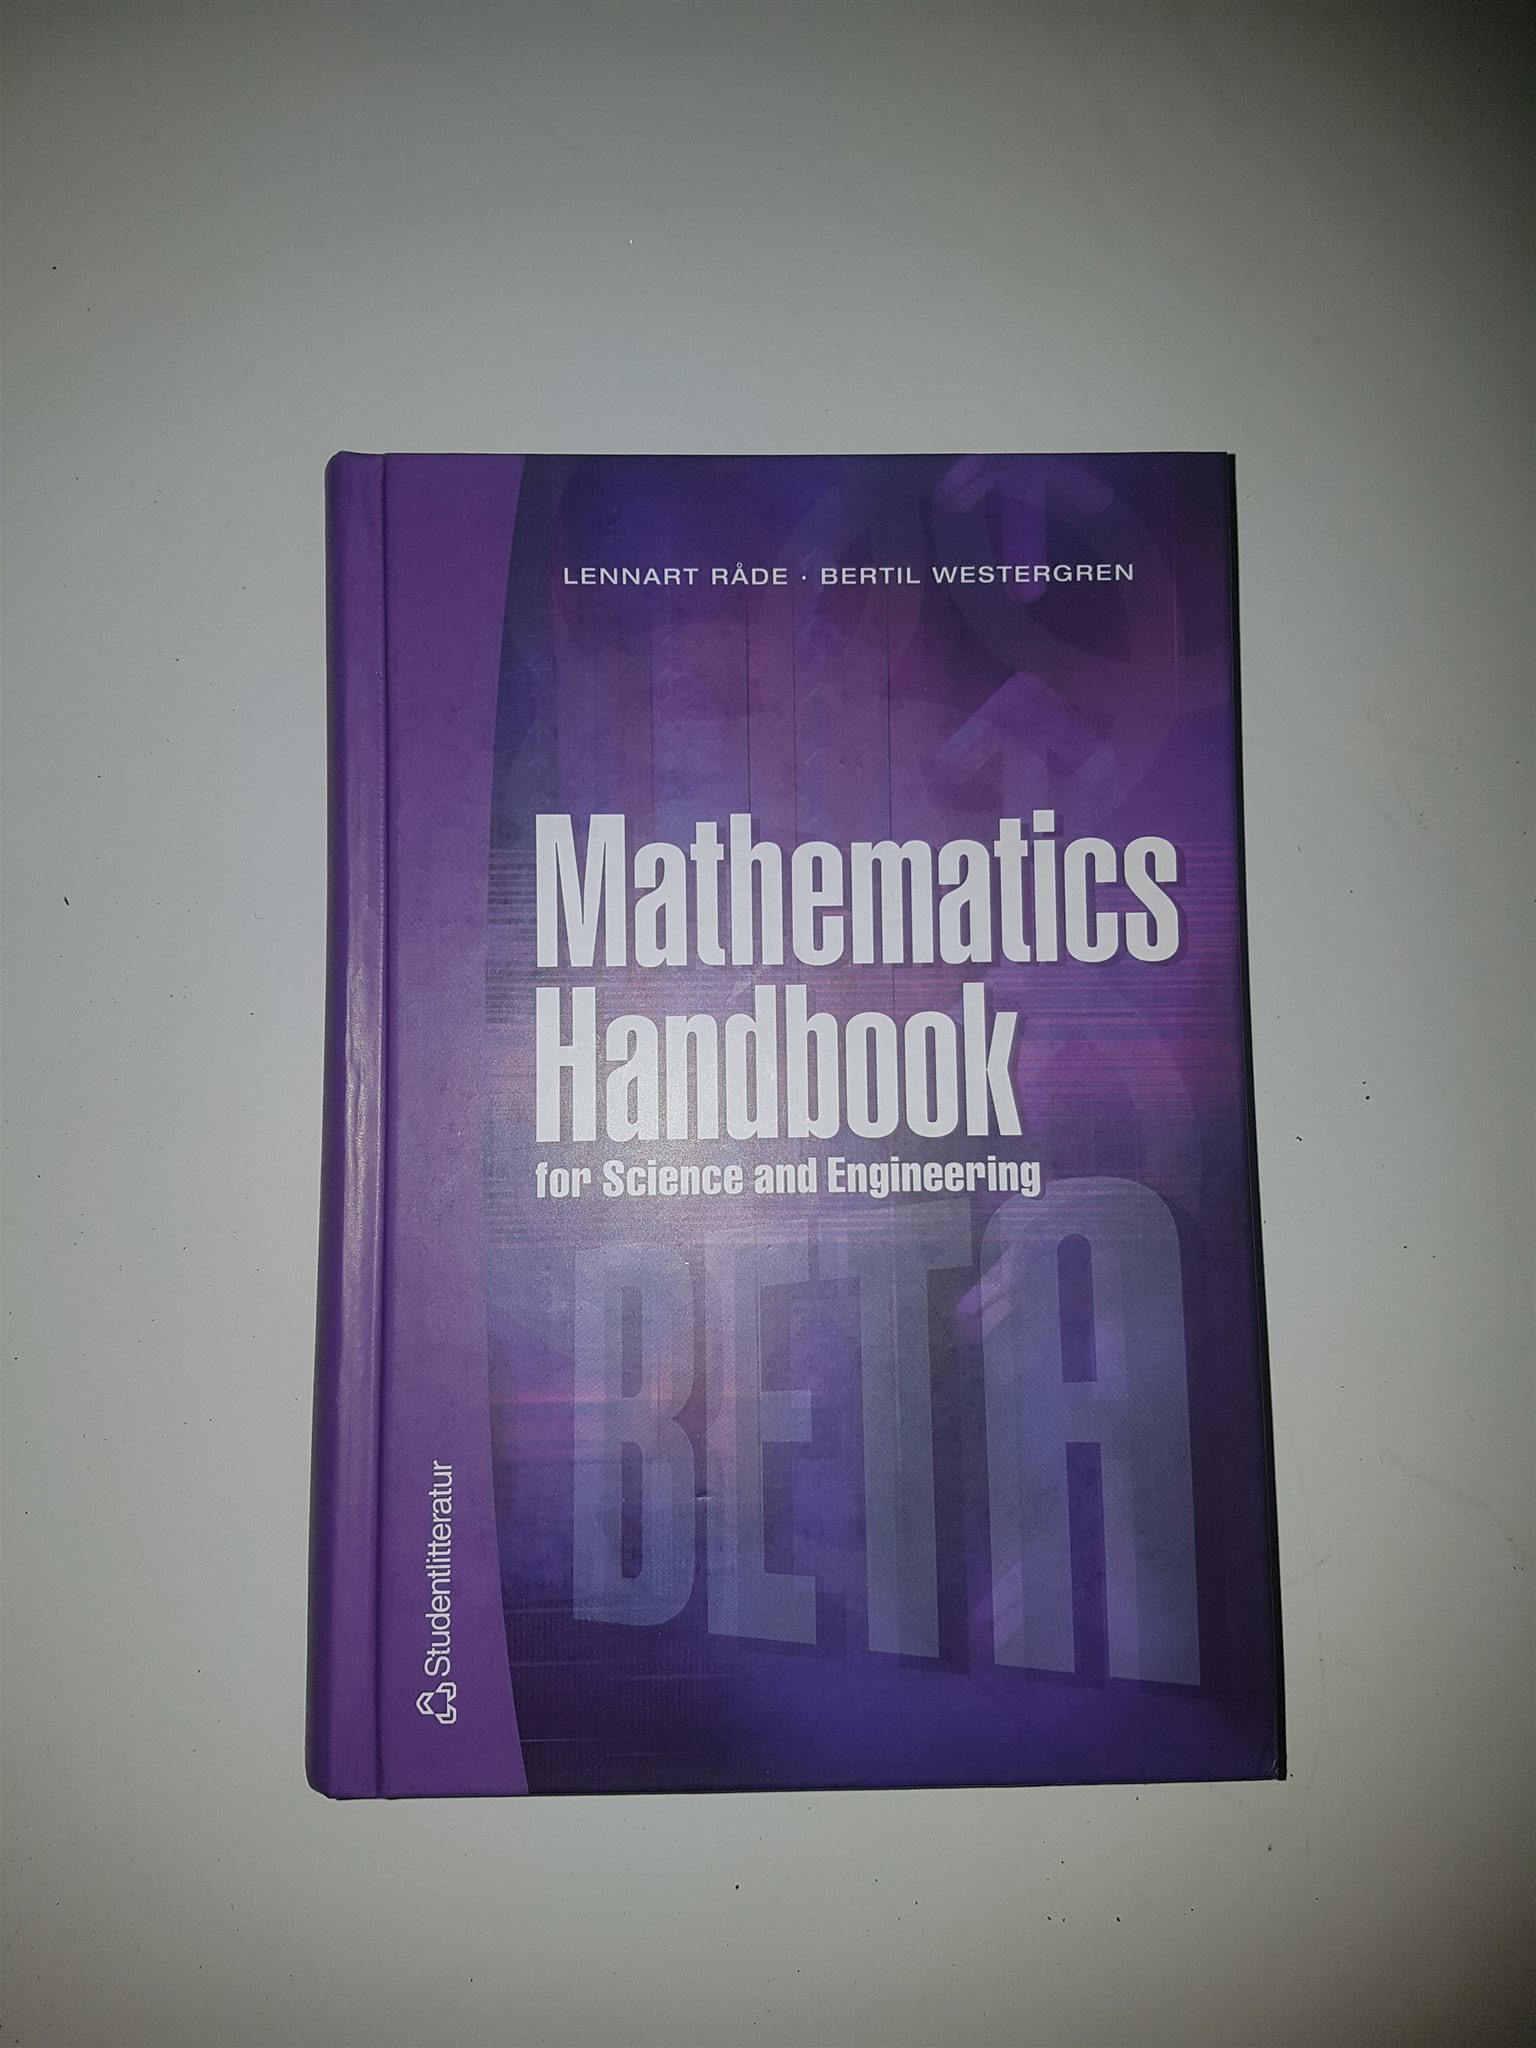 Mathematics handbook, BETA utgåva 4